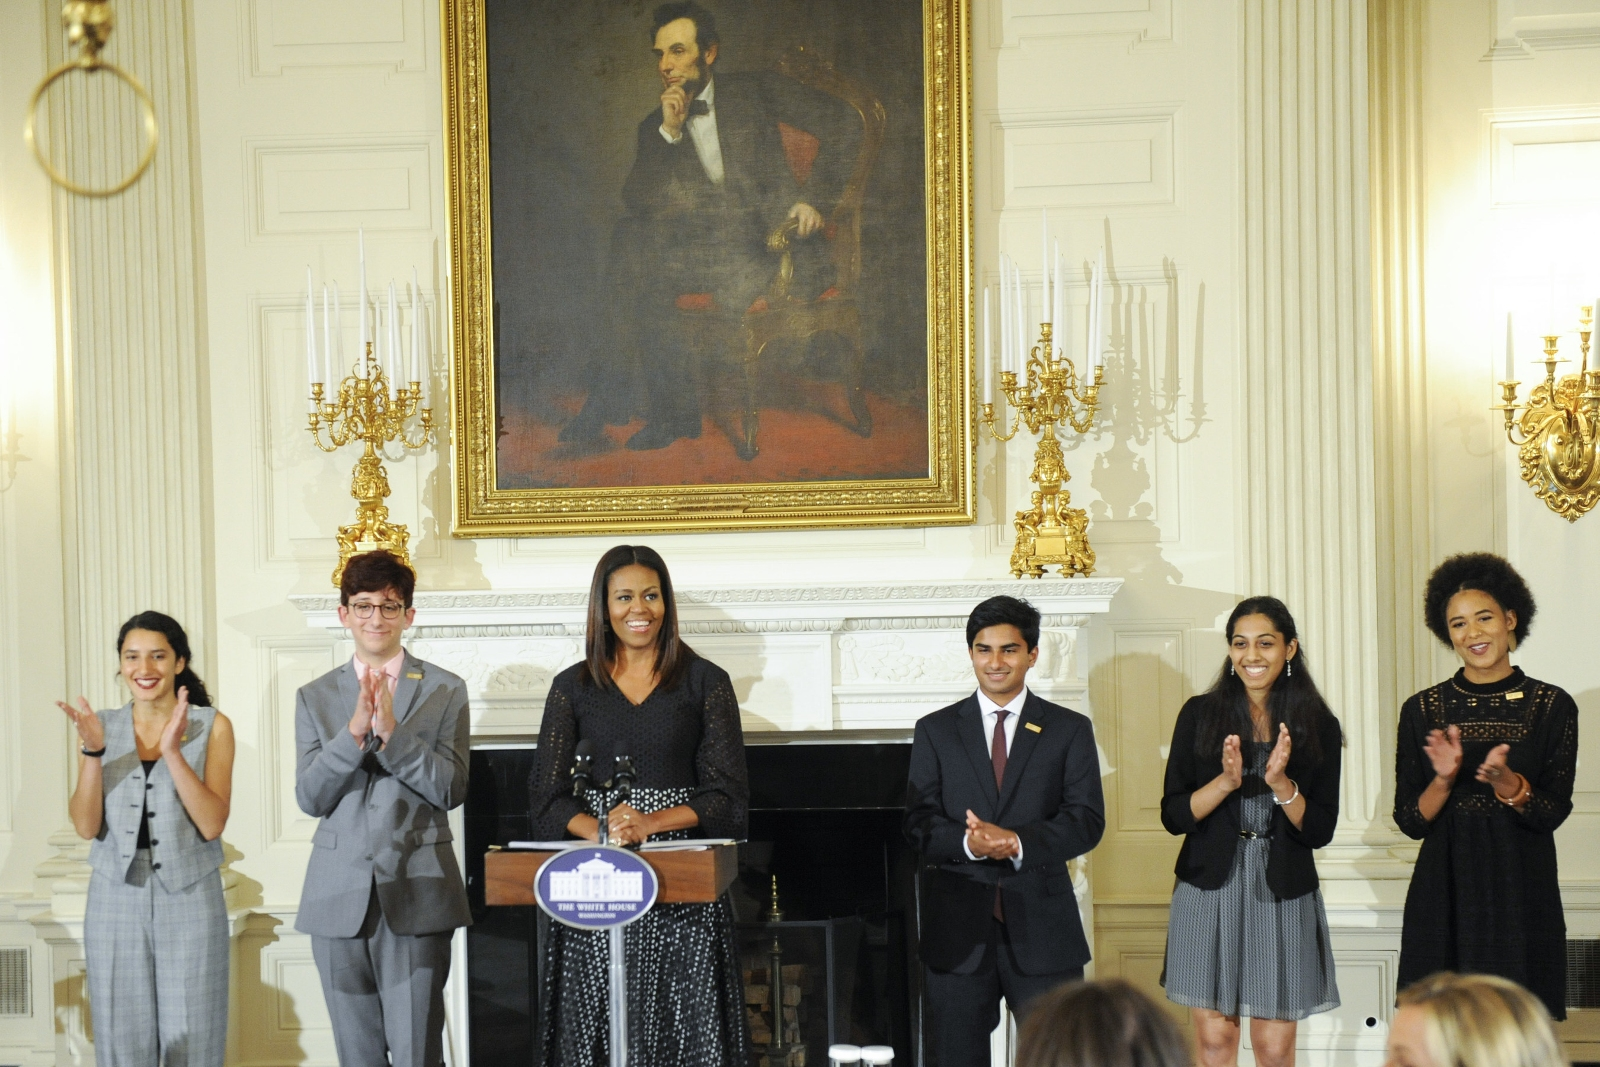 2016 class of National Student Poets with First Lady Michele Obama at White House ceremony (Courtesy of White House)